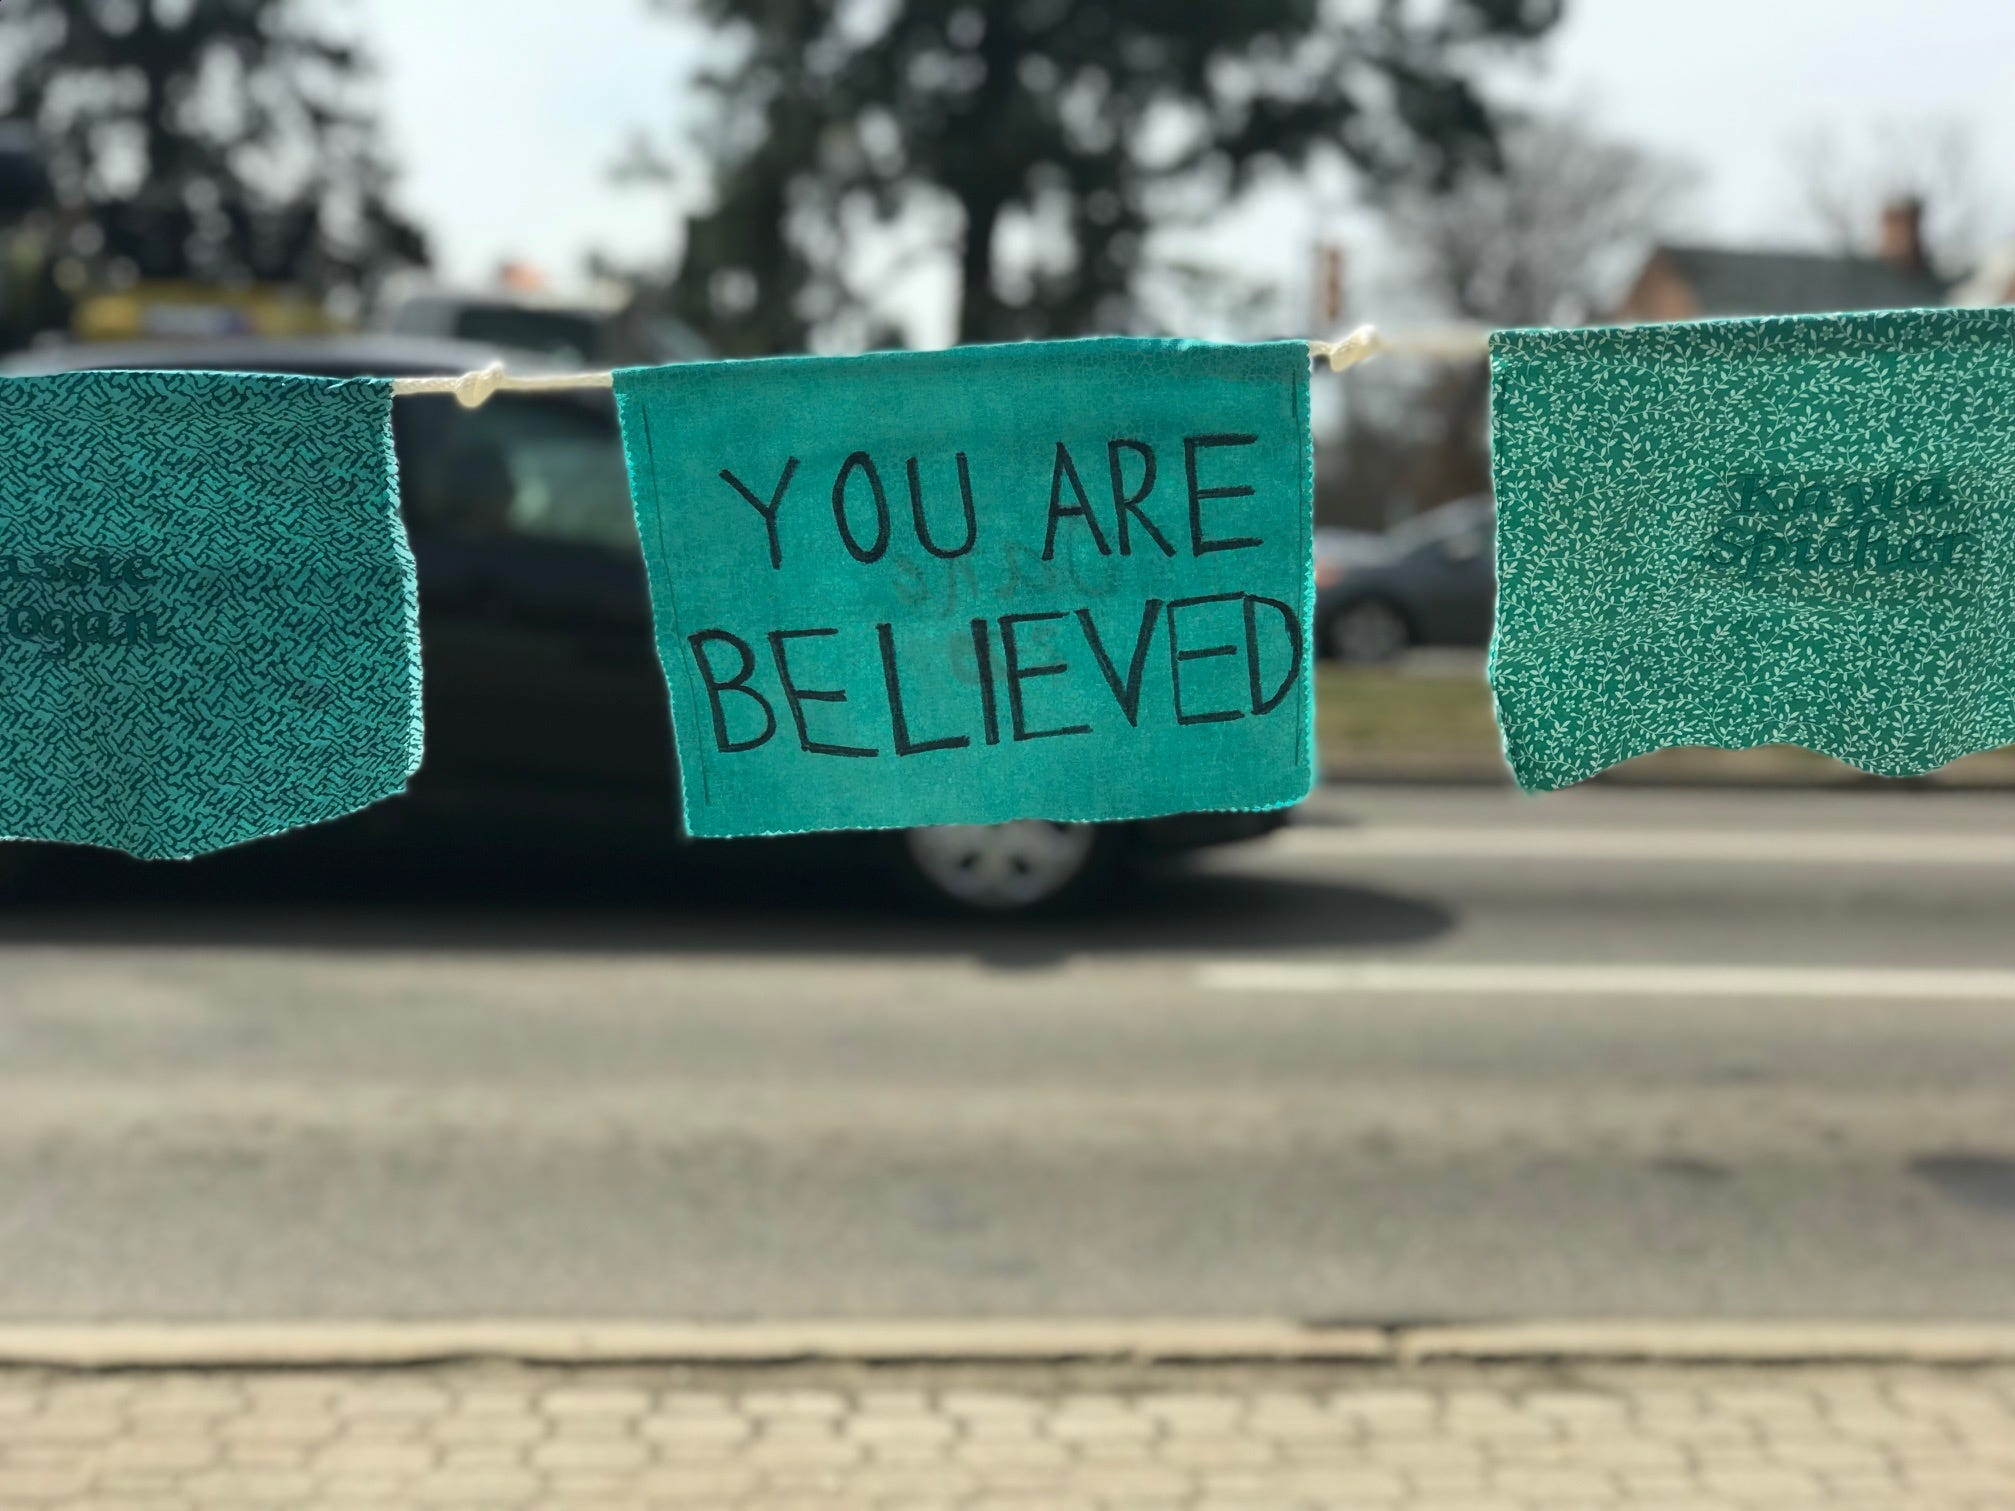 505 flags, one for each survivor of Nassar's sexual abuse, to line Grand River Avenue